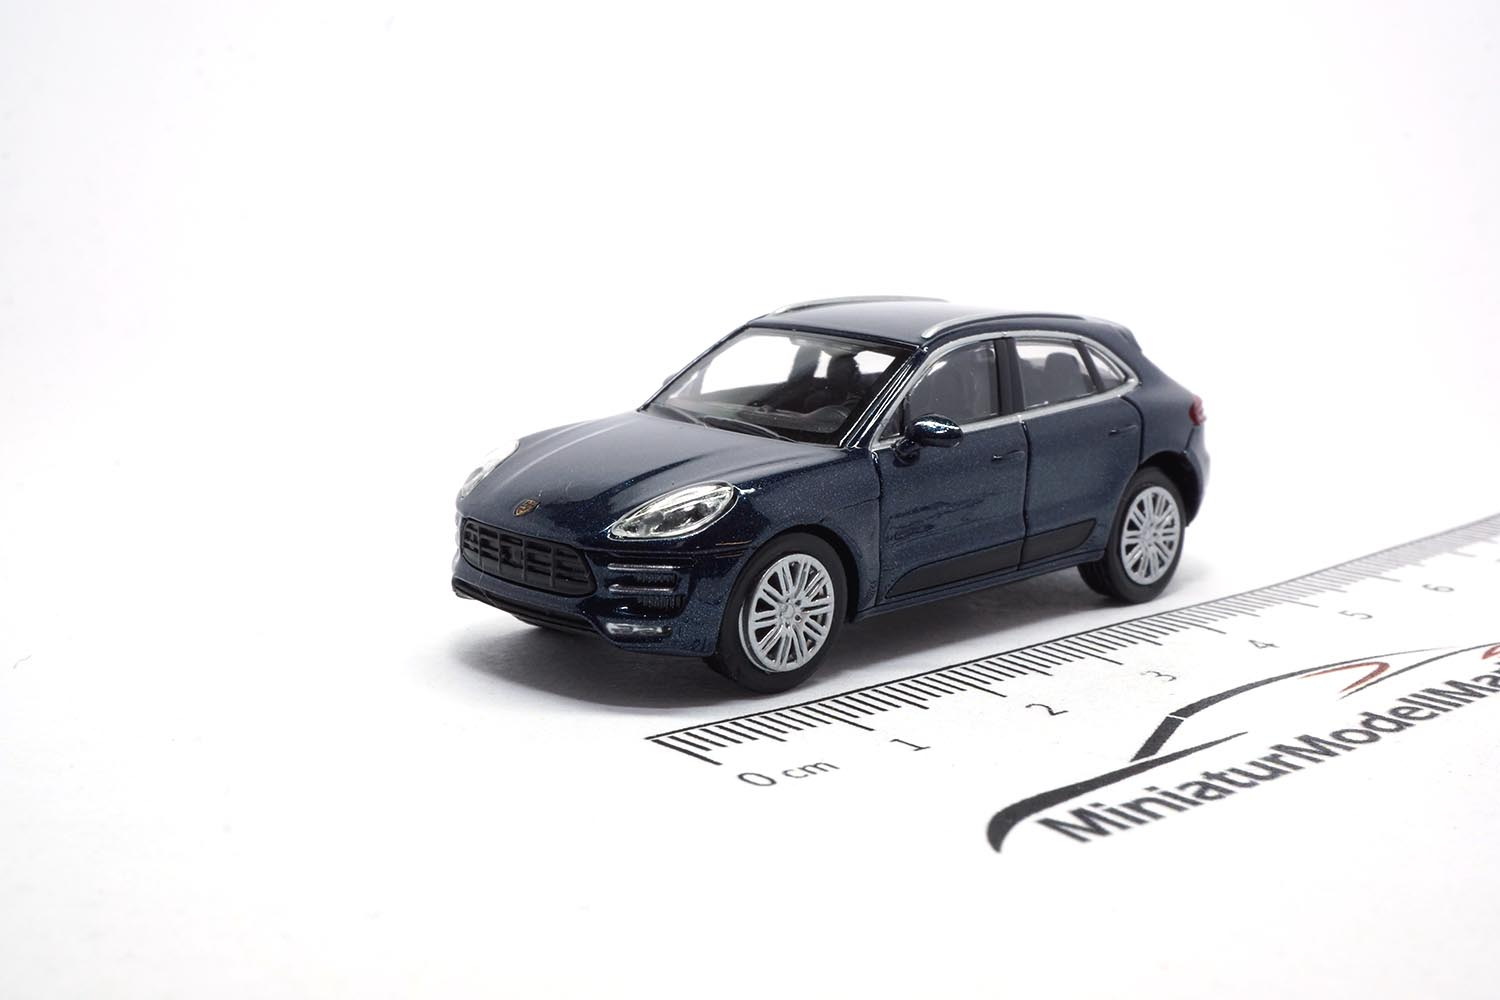 Minichamps 870067004 Porsche Macan Turbo - Blue Metallic 1:87